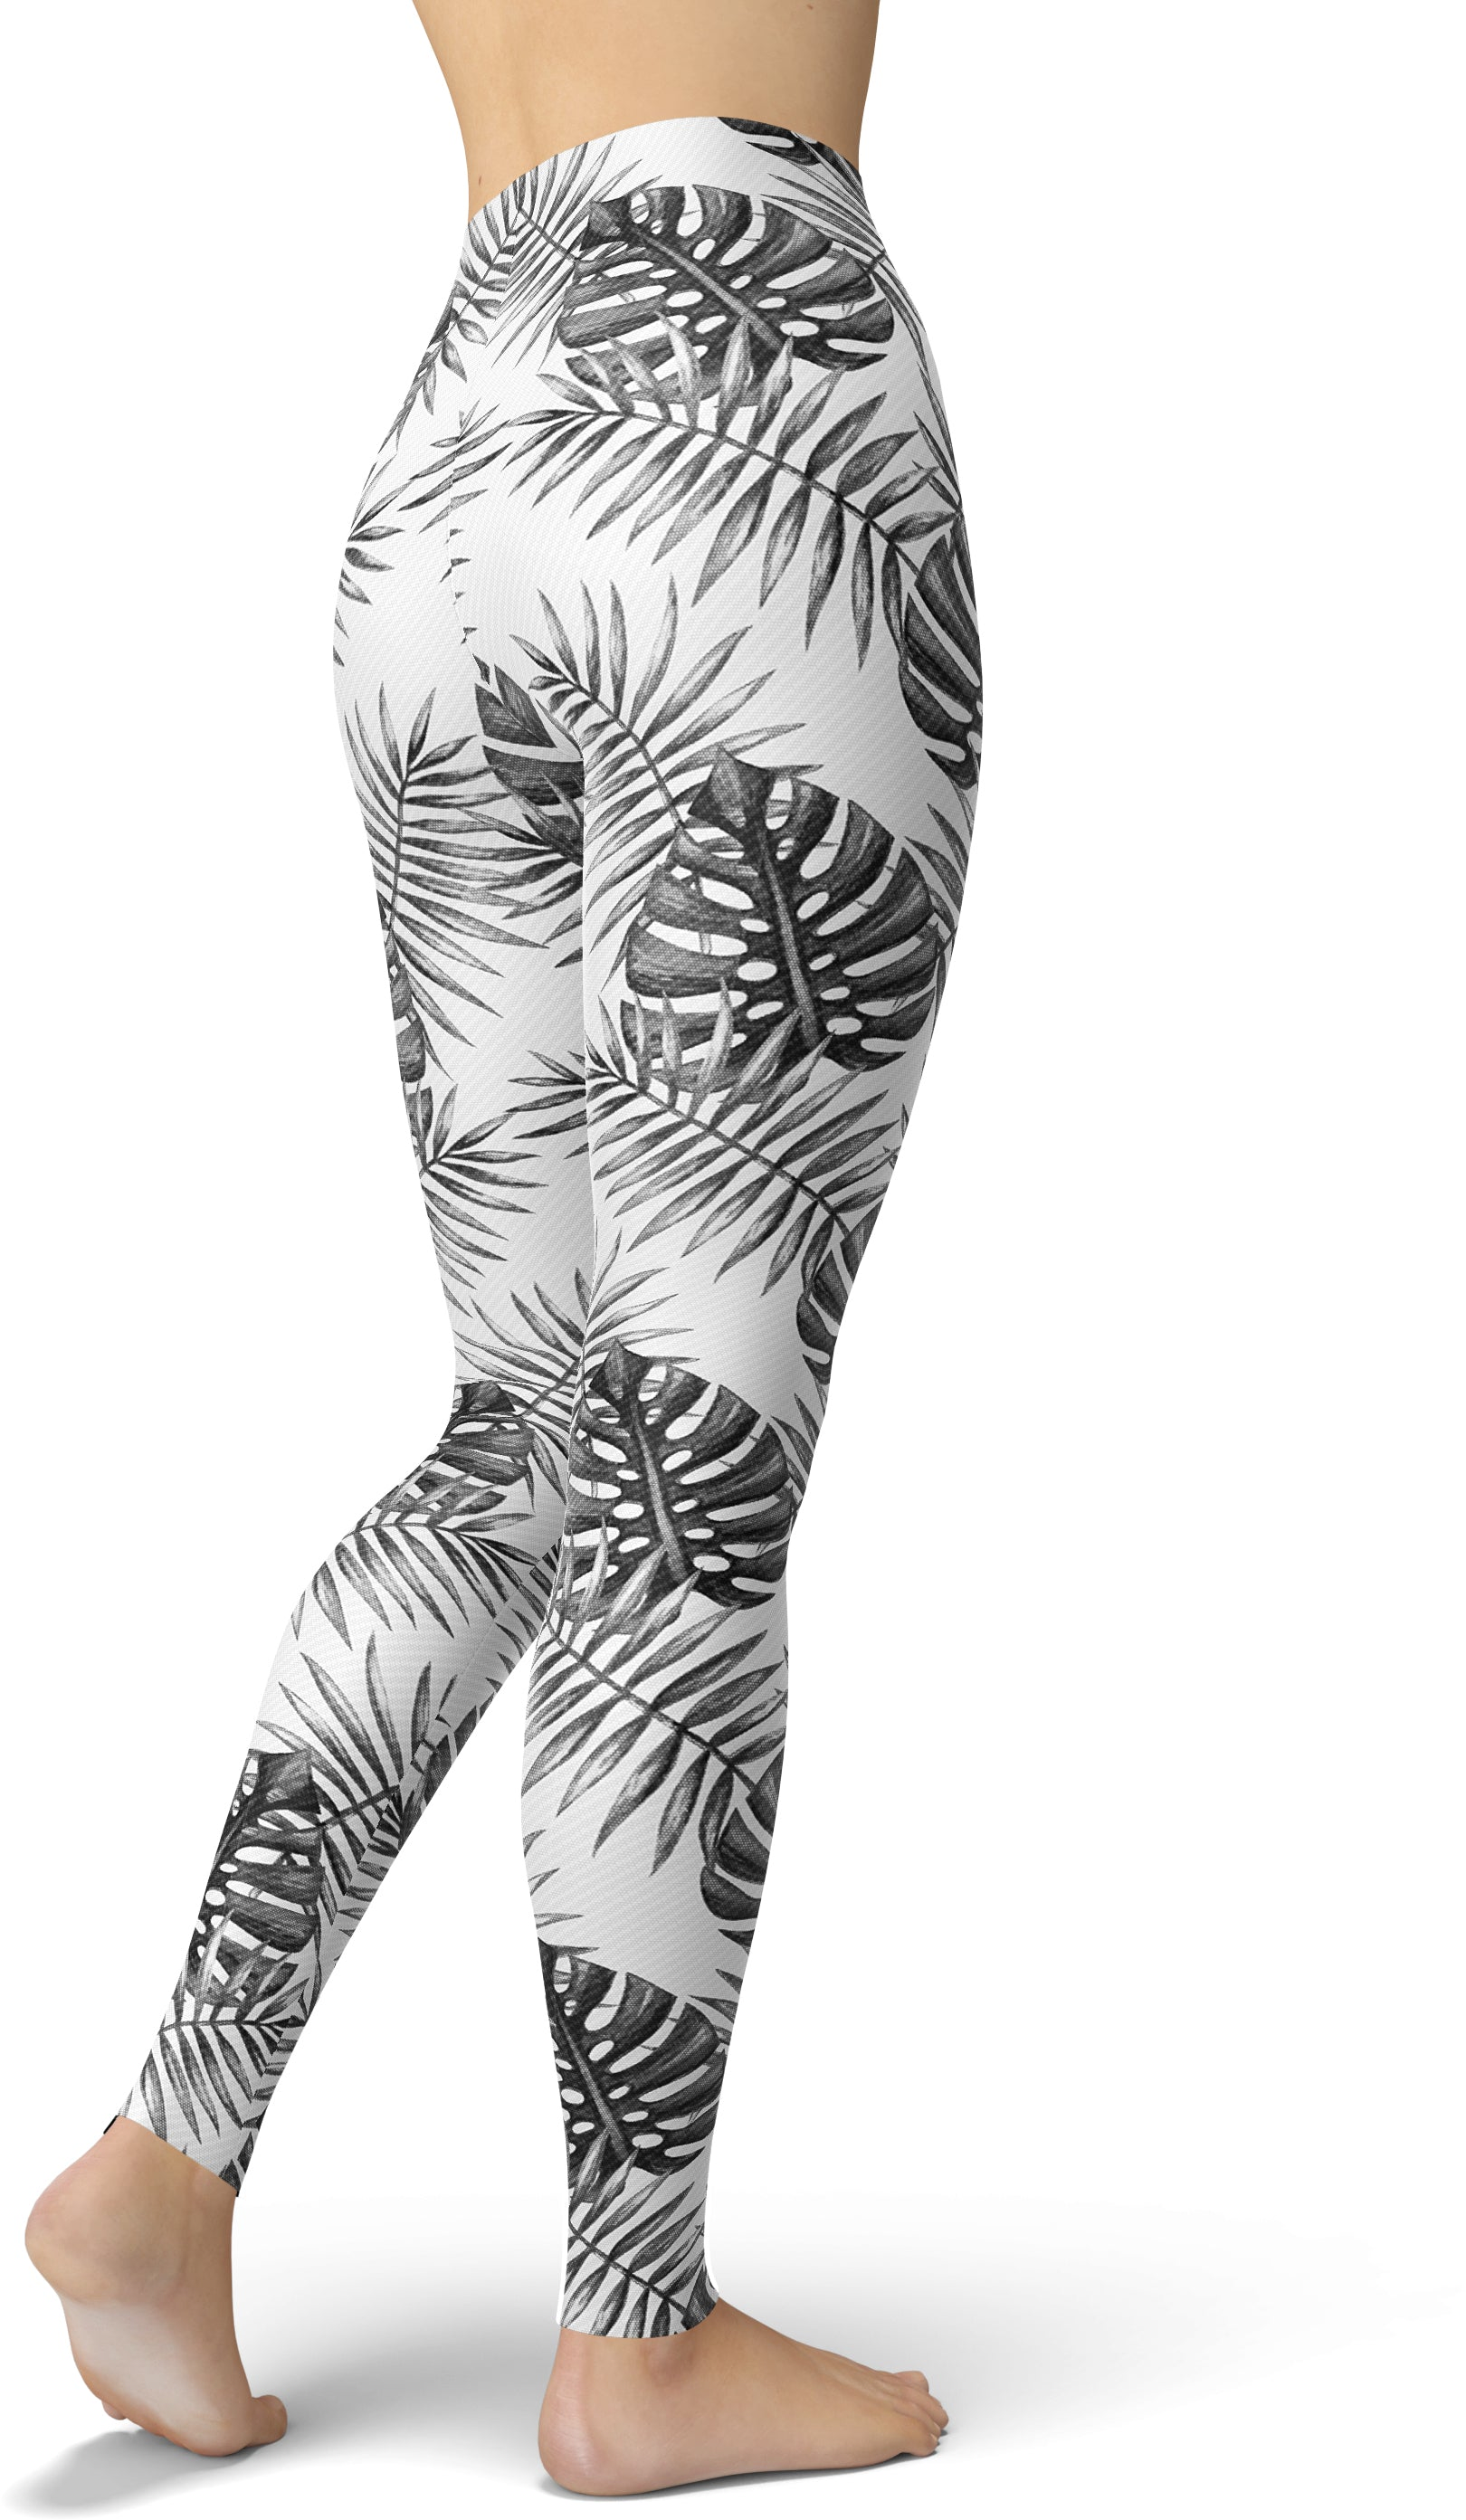 Grayscale Tropical Palm Leggings